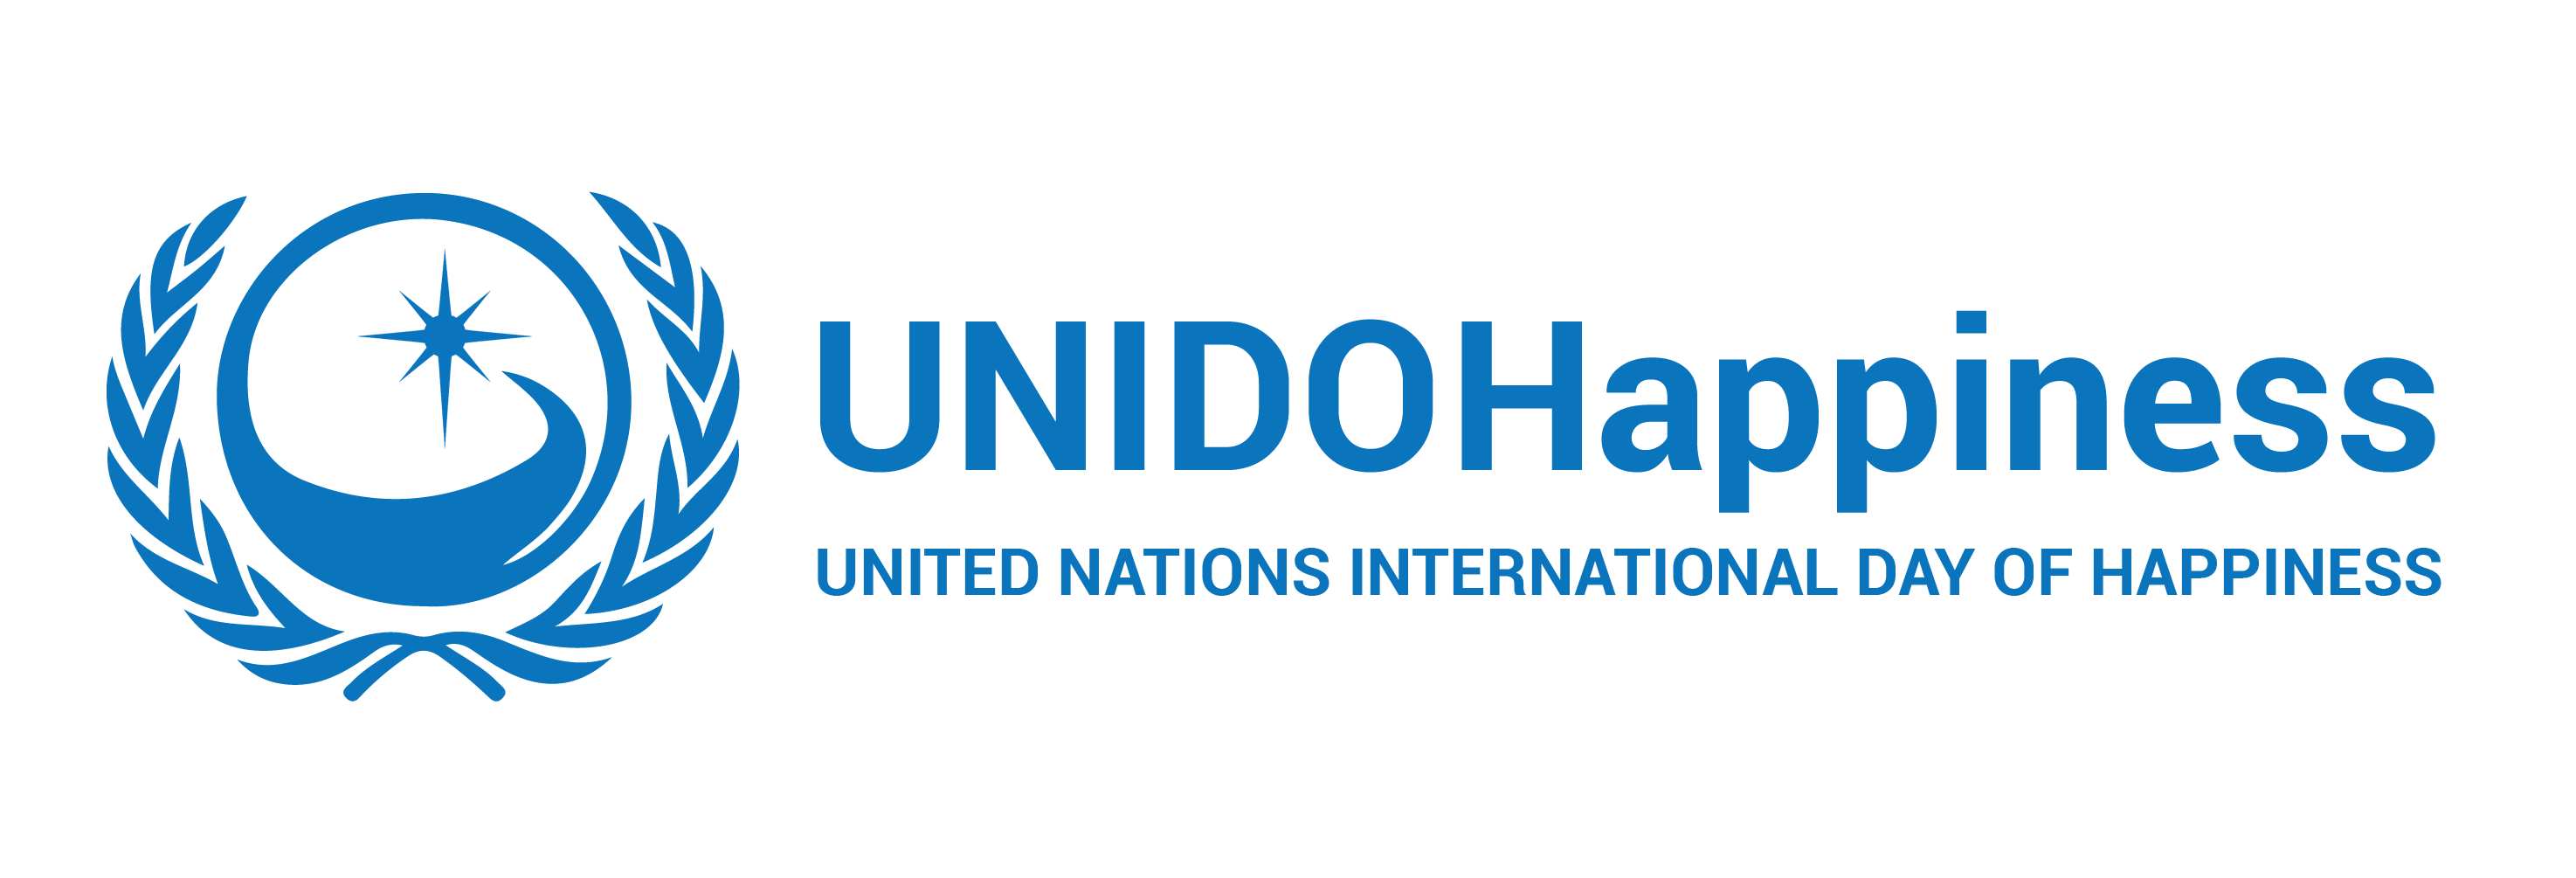 UNIDOHappiness Official Logo